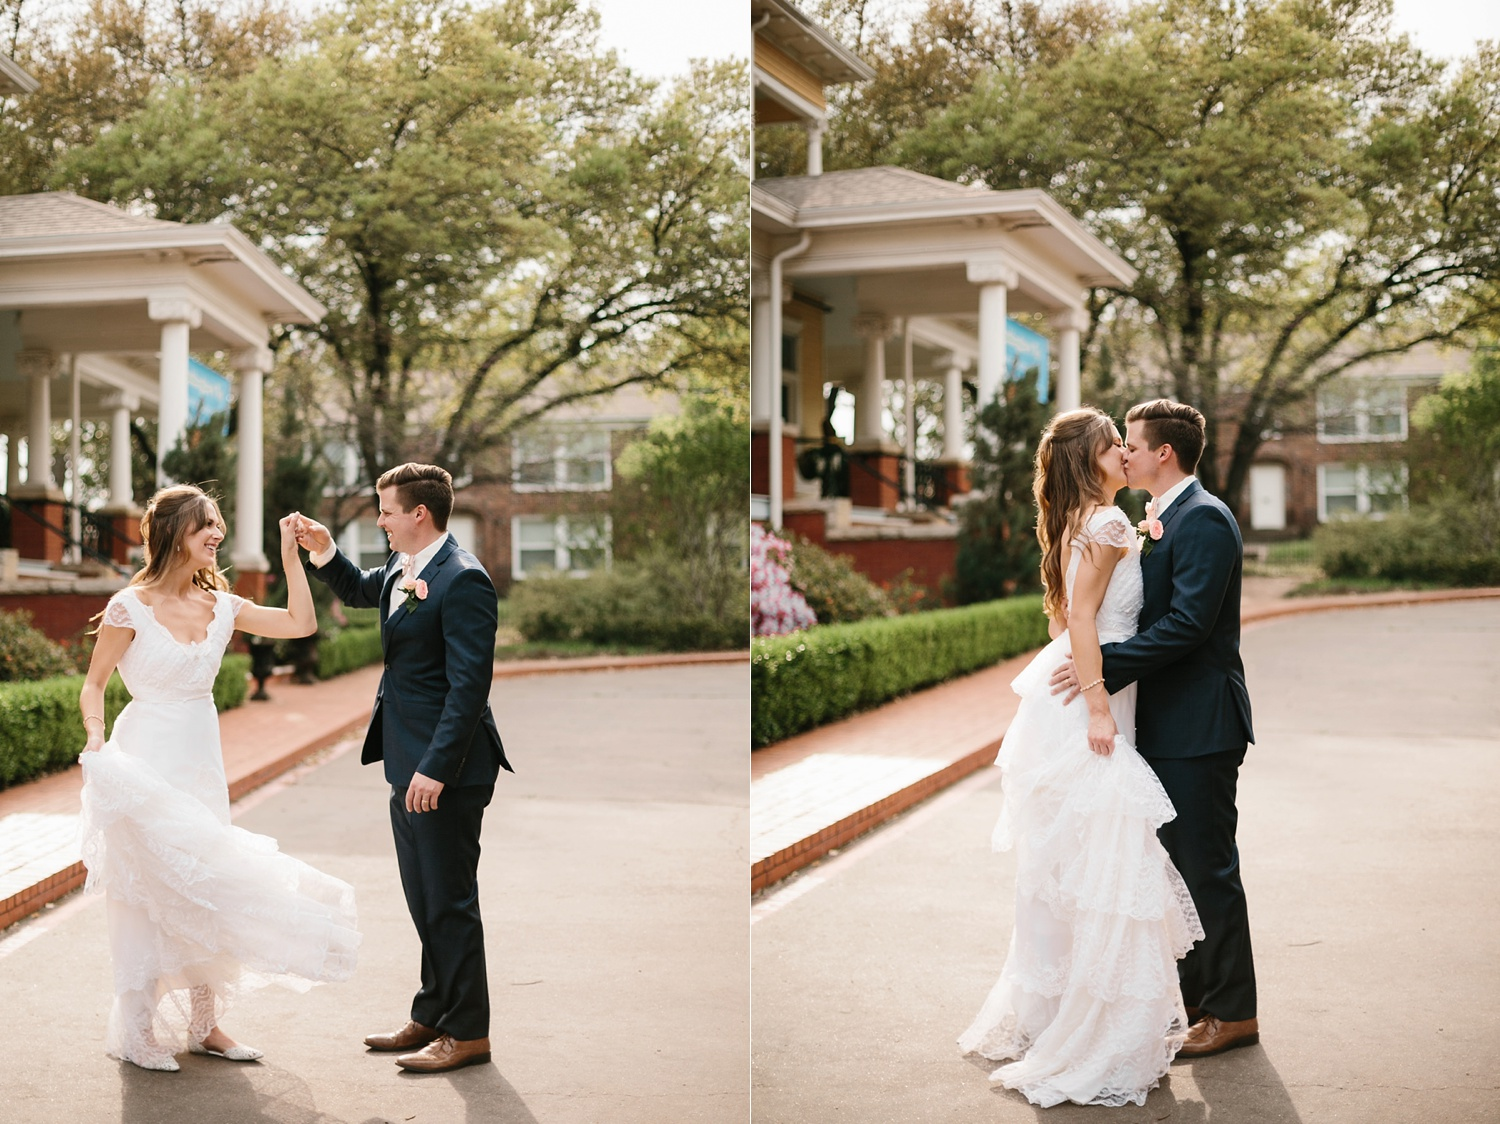 Amber + Daniel an intimate, simple, spring ceremony at Heard Craig Center and reception at Gather in McKinney, Texas by North Texas Wedding Photographer Rachel Meagan Photography 096